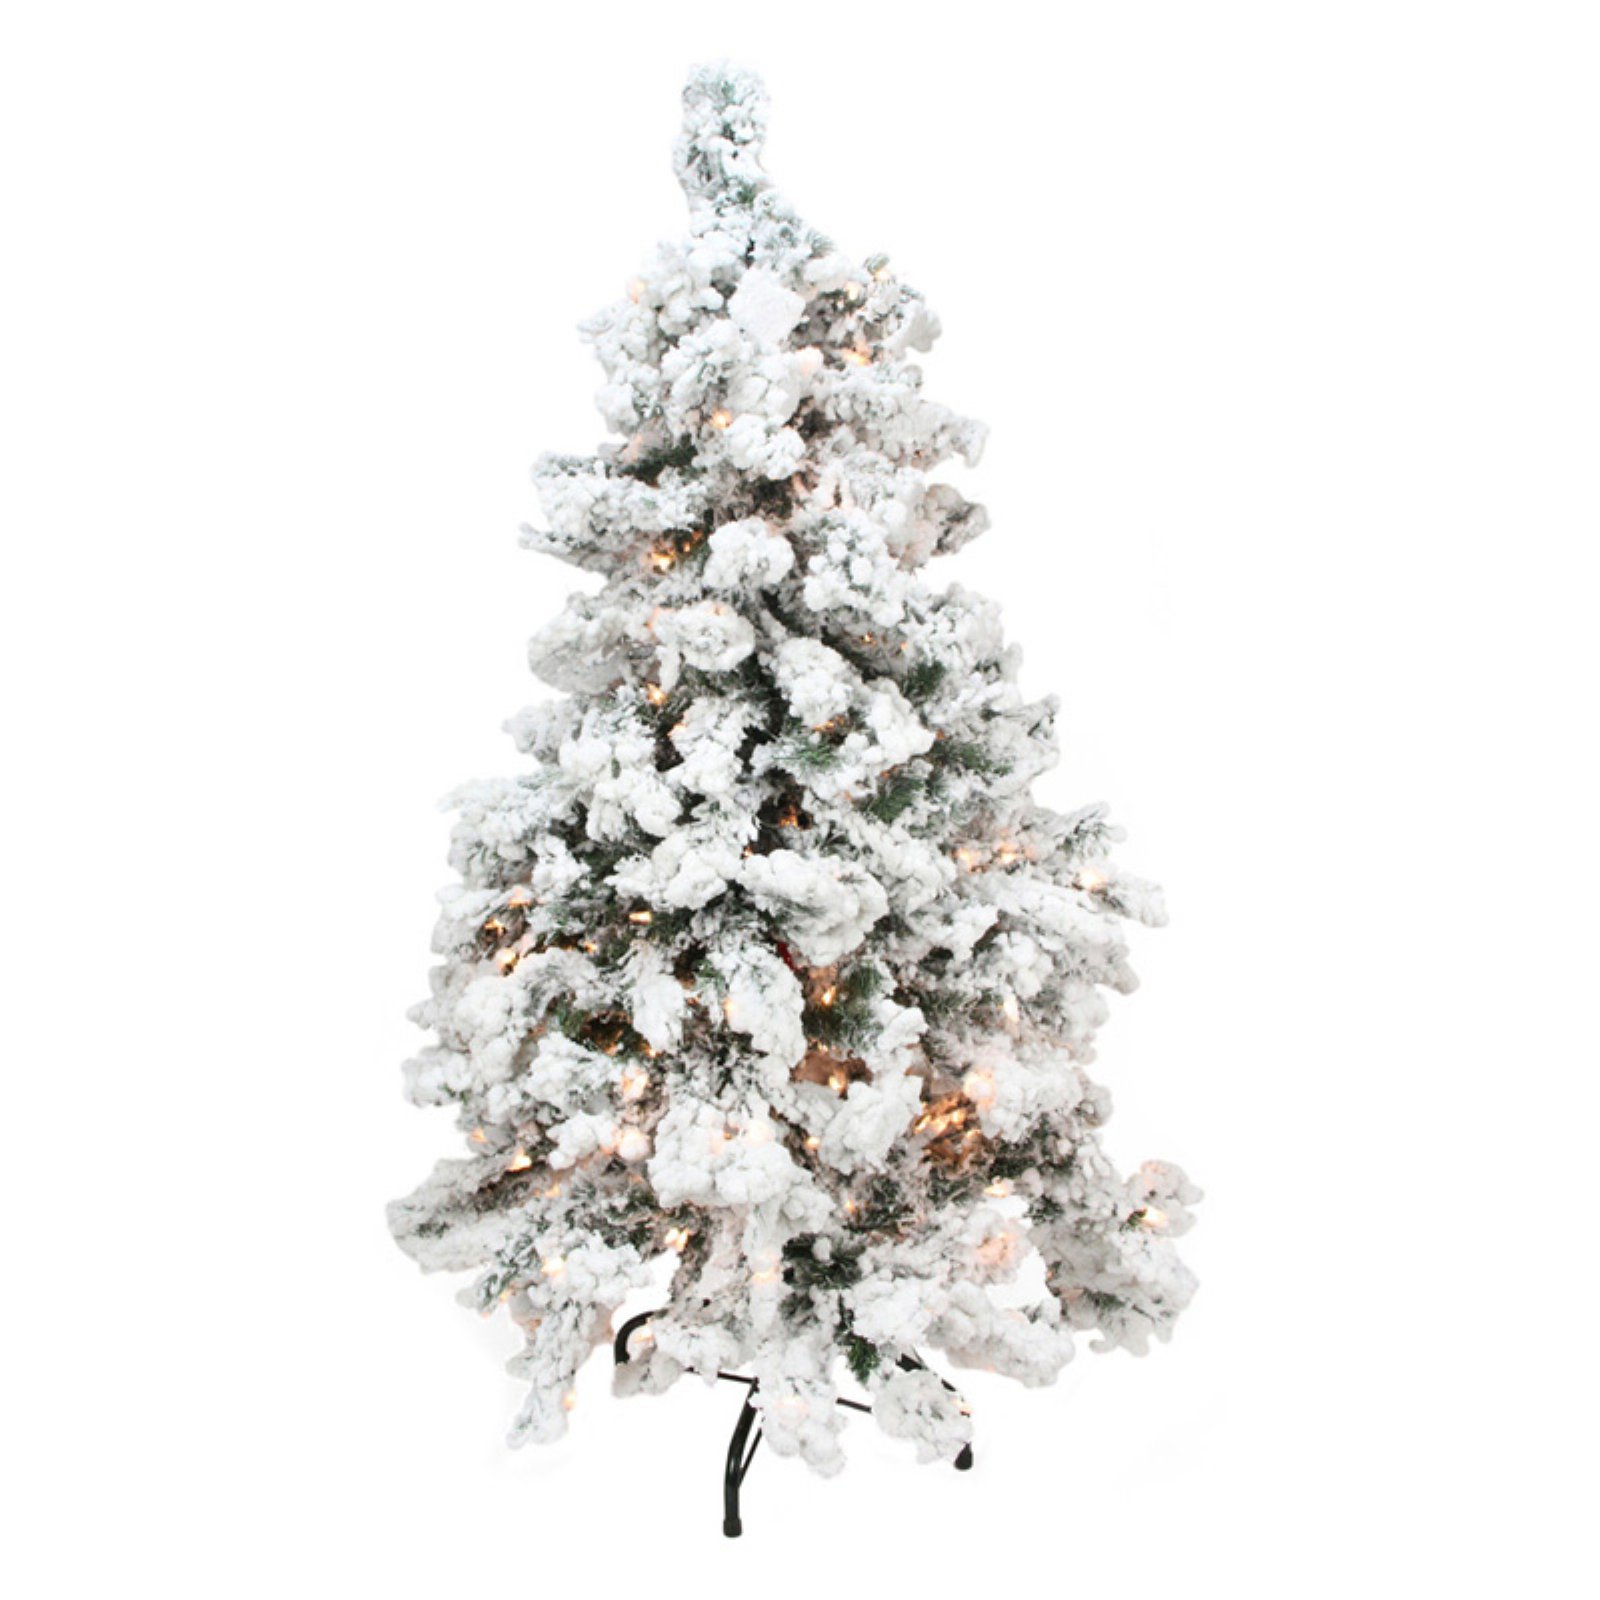 12 Ft Flocked Christmas Tree: Northlight 2 Ft. Heavily Flocked Medium Pine Pre-lit